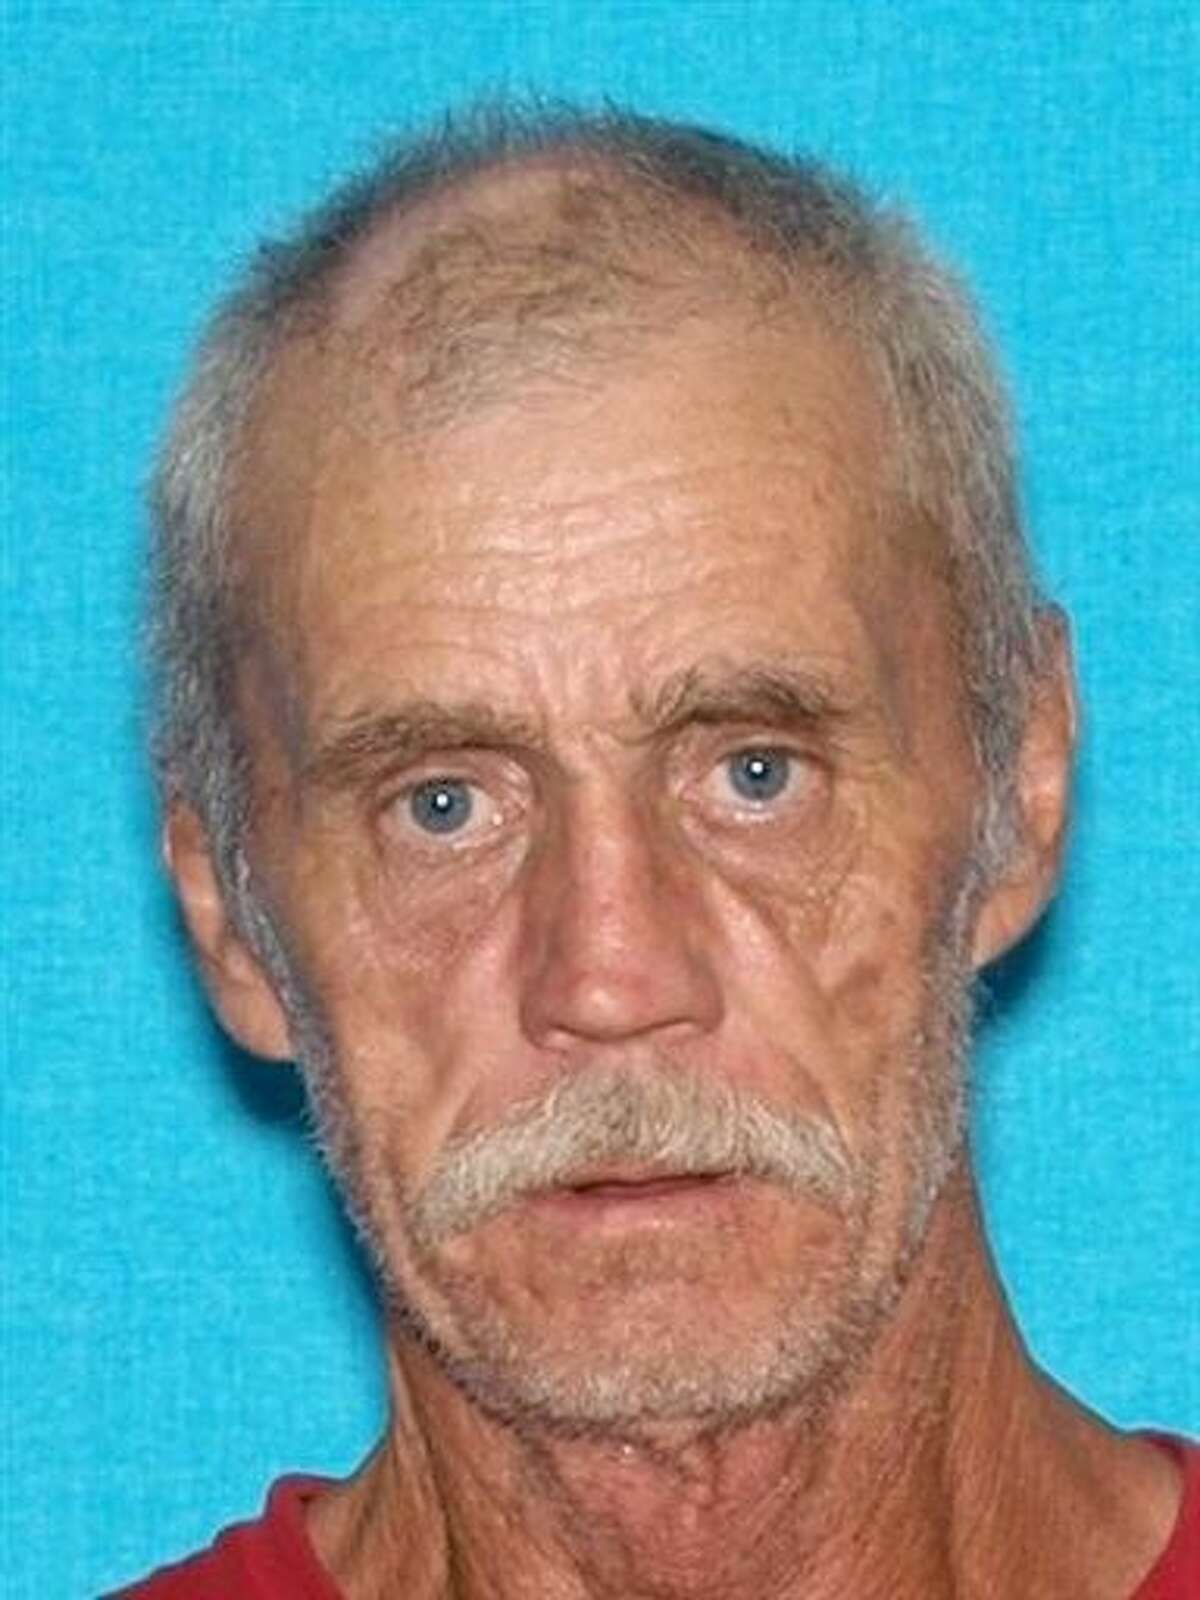 Floyd Ray Cook is seen in an undated photo provided by the Kentucky State Police. A manhunt is underway for Cook, who is accused of shooting and wounding a Tennessee police officer and then firing at a state trooper in Kentucky. Classes were called off Monday in Cumberland County as the manhunt continued.